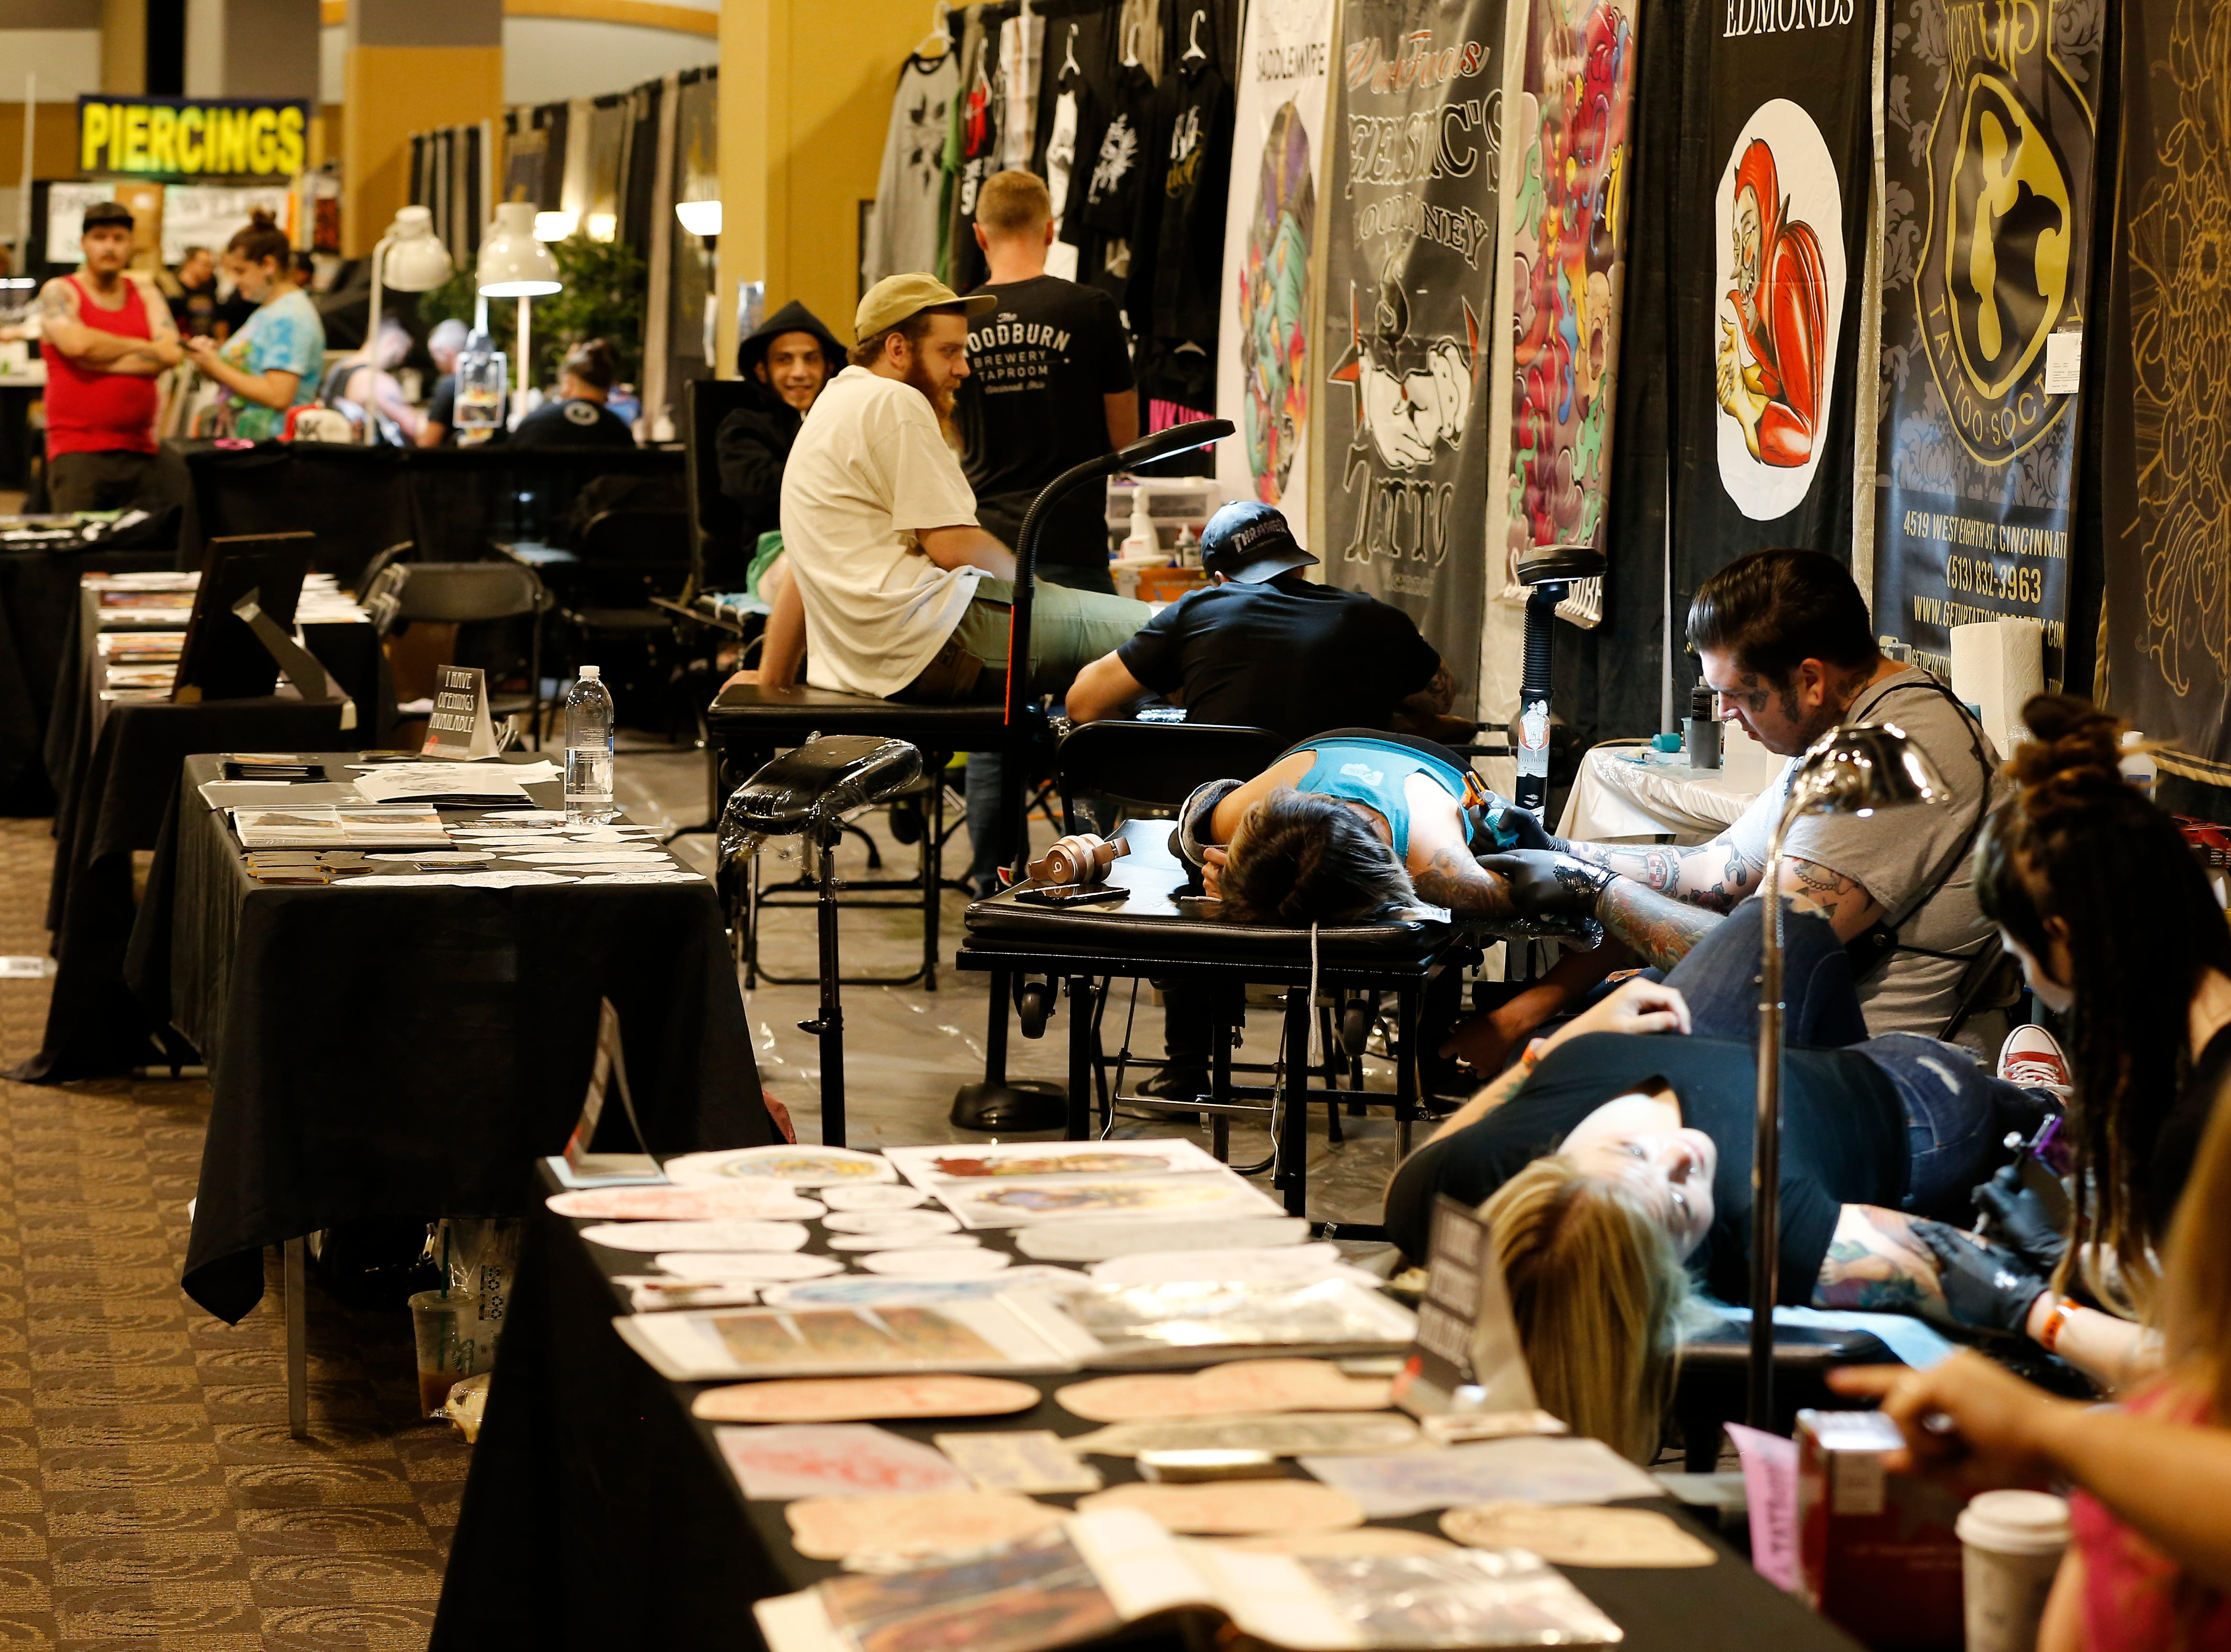 Visitors line up to receive new tattoos from visiting artists during the Greater Cincinnati Tattoo Arts Convention at the Northern Kentucky Convention Center in Covington, Ky., on Friday, Sept. 7, 2018.